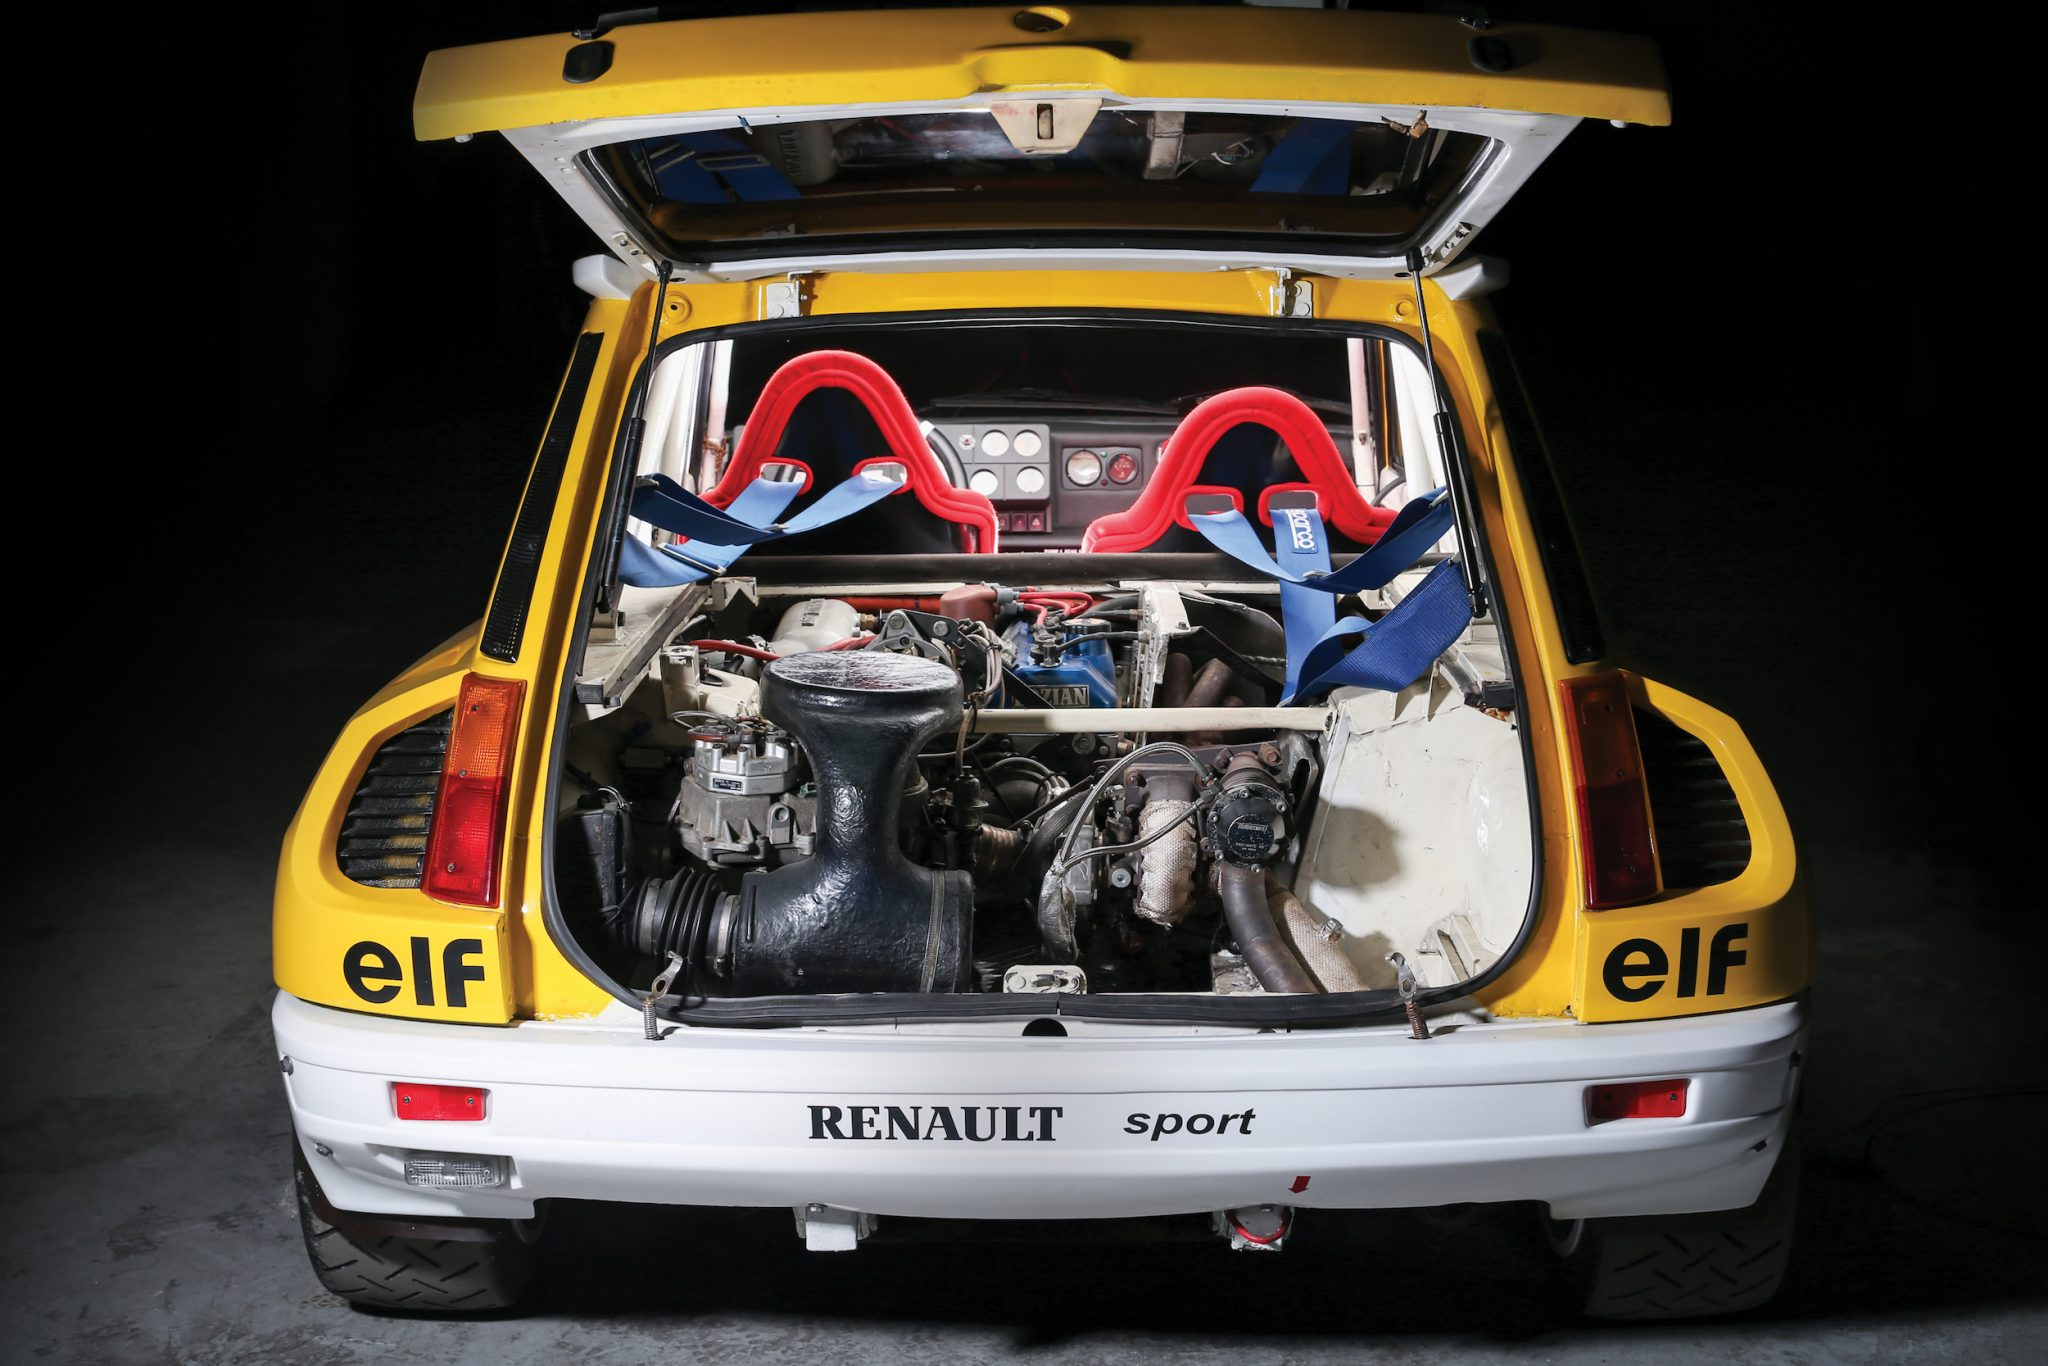 renault 5 turbo photo corse vintage